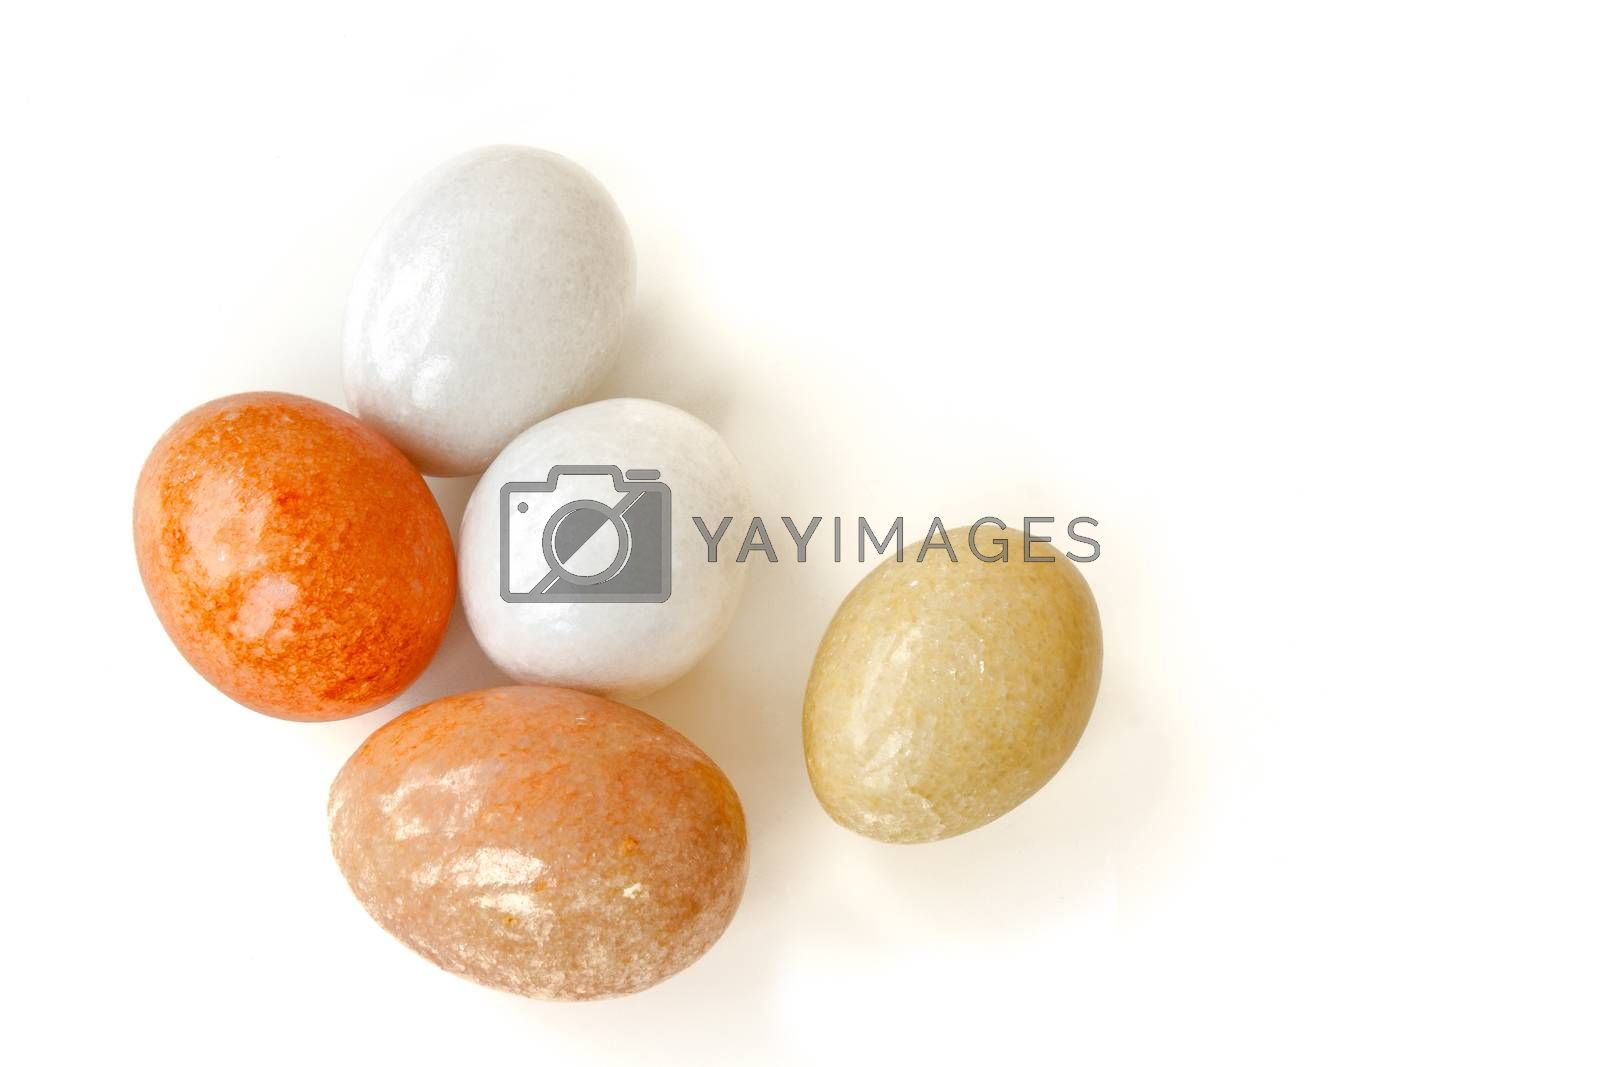 colorful stone with egg shaped